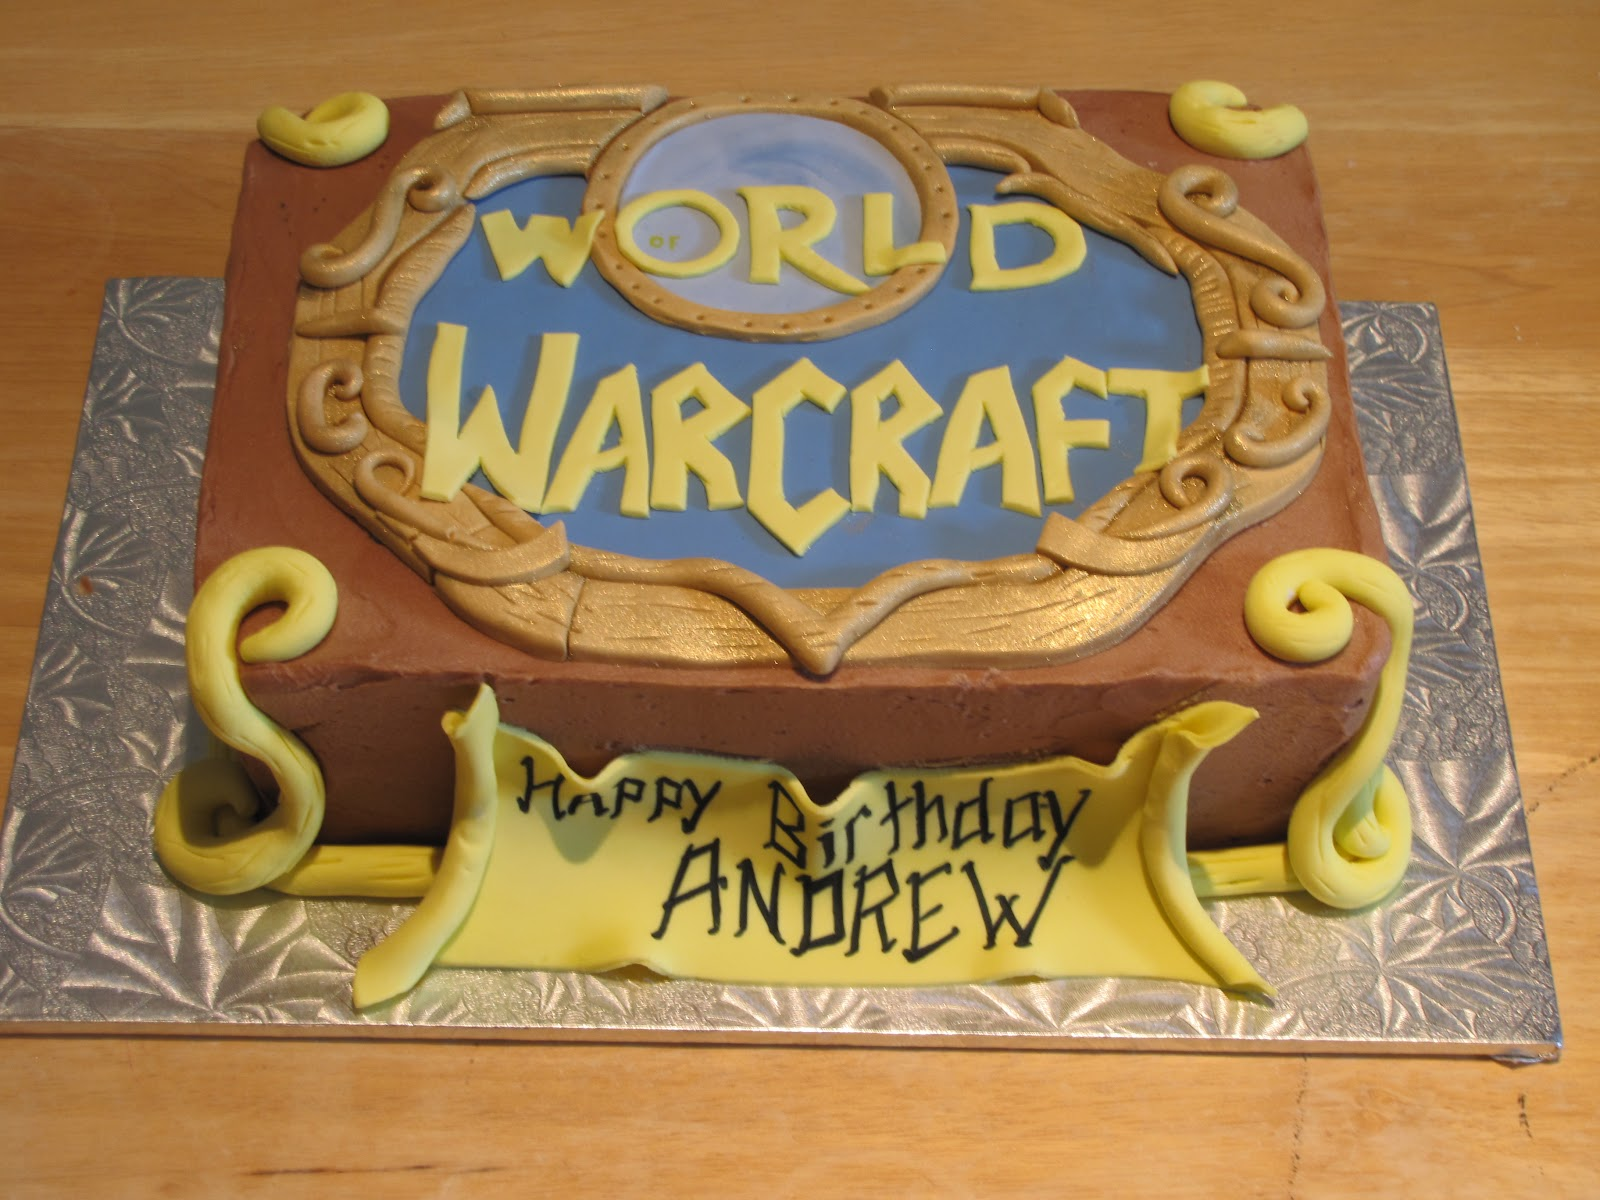 Creative Cake Designs By Ann Marie: World of Warcraft Cake